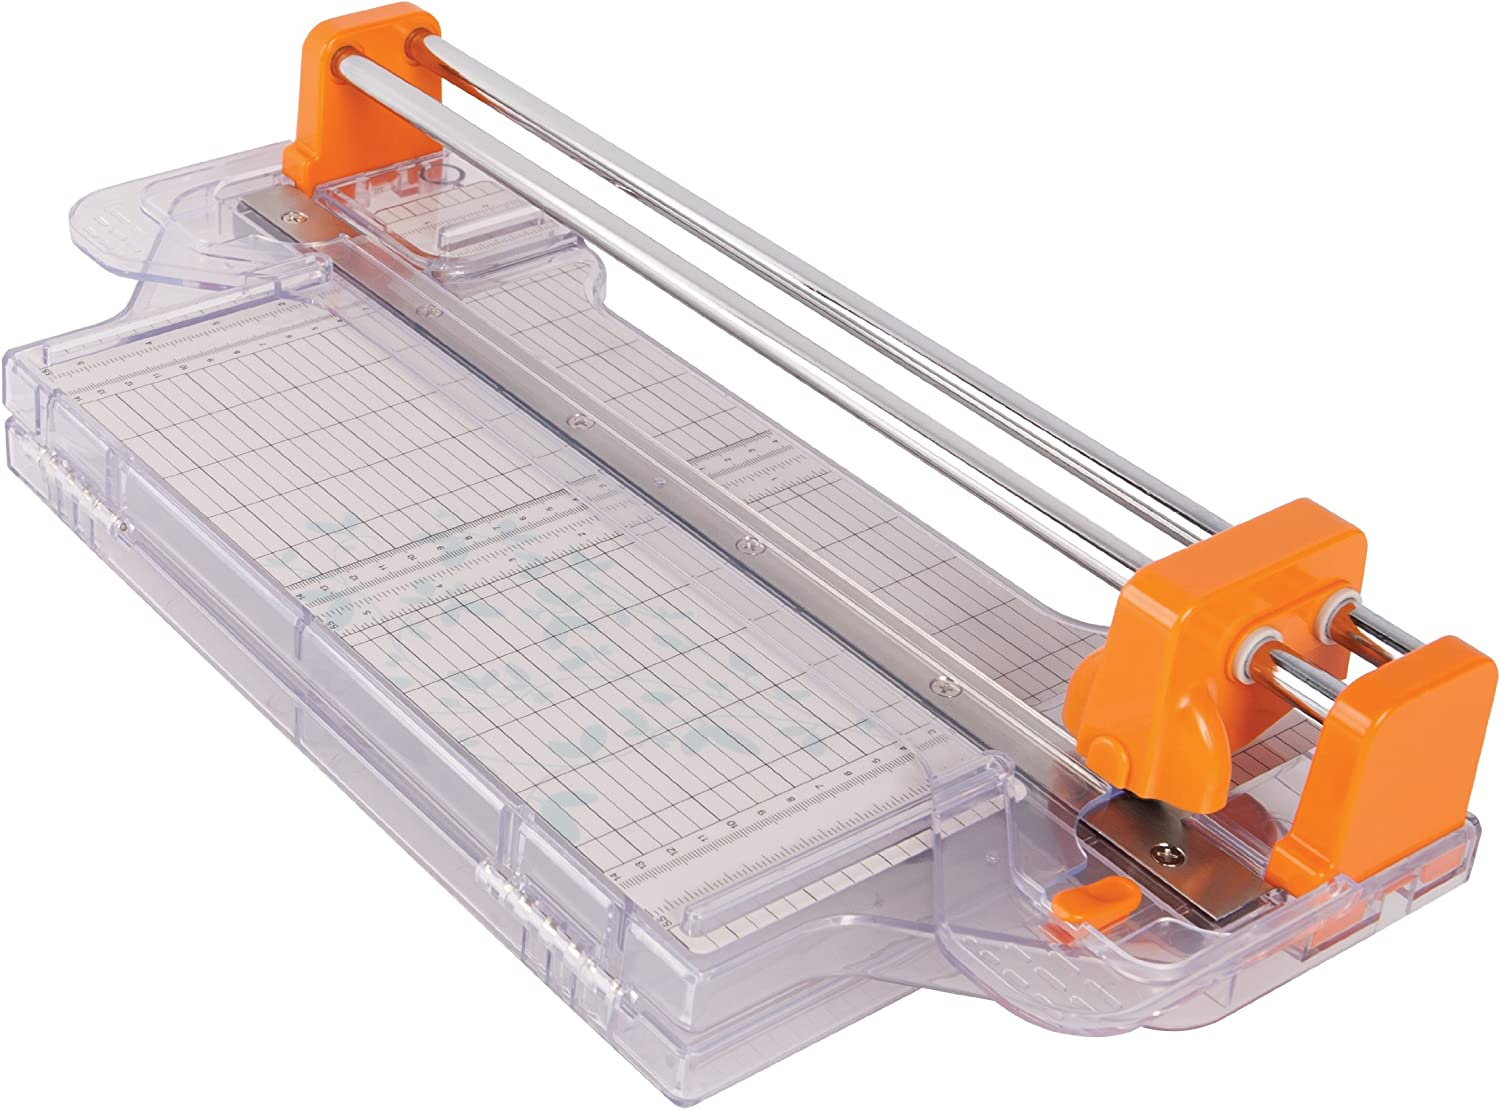 Fiskars Procision Rotary Bypass Trimmer, 12 Inch: Arts, Crafts & Sewing